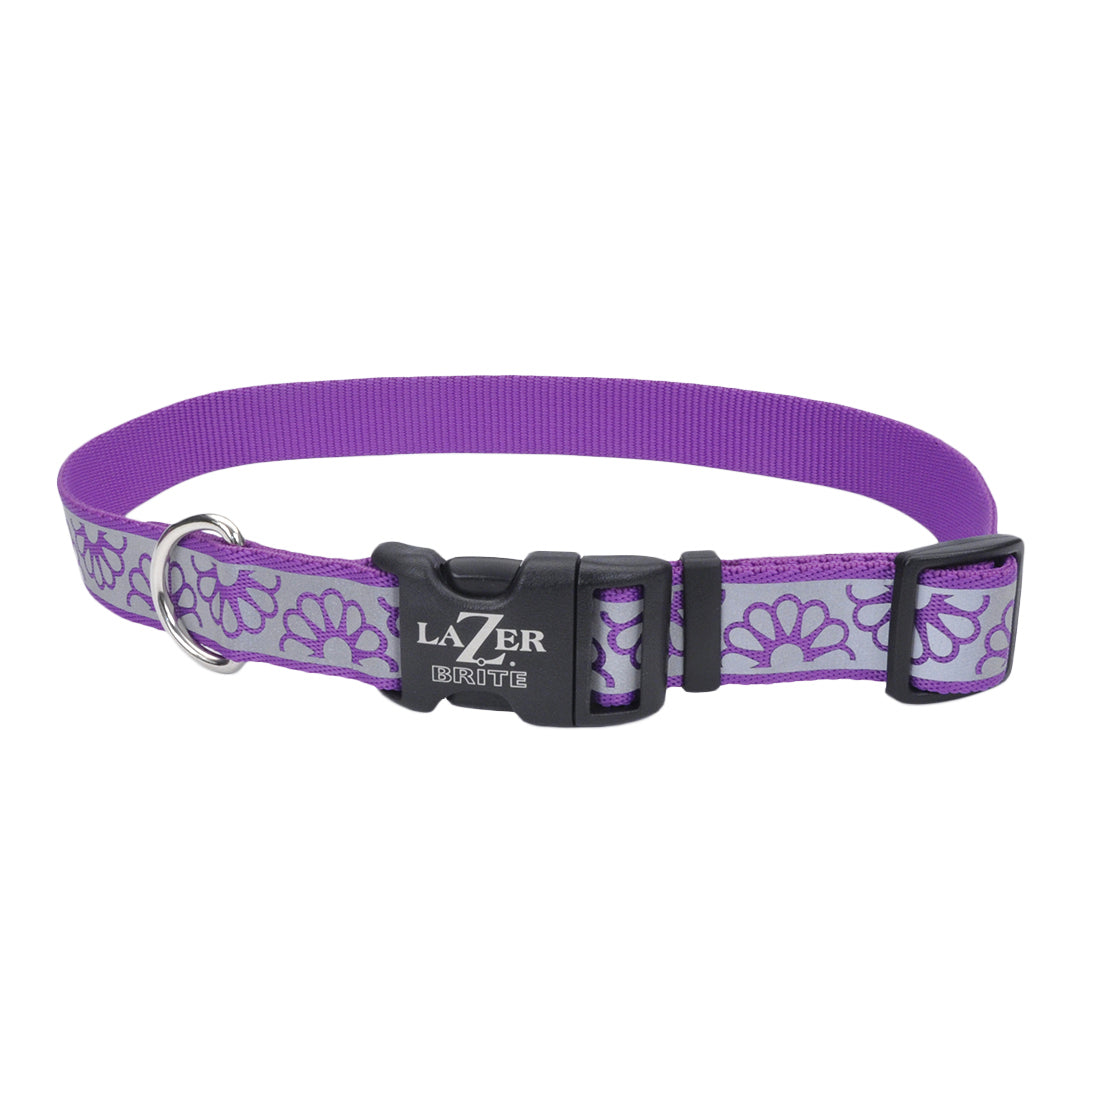 "Coastal Lazer Bright Reflective Adjustable Collar 12-18"" - 5/8"" Purple Daisy"